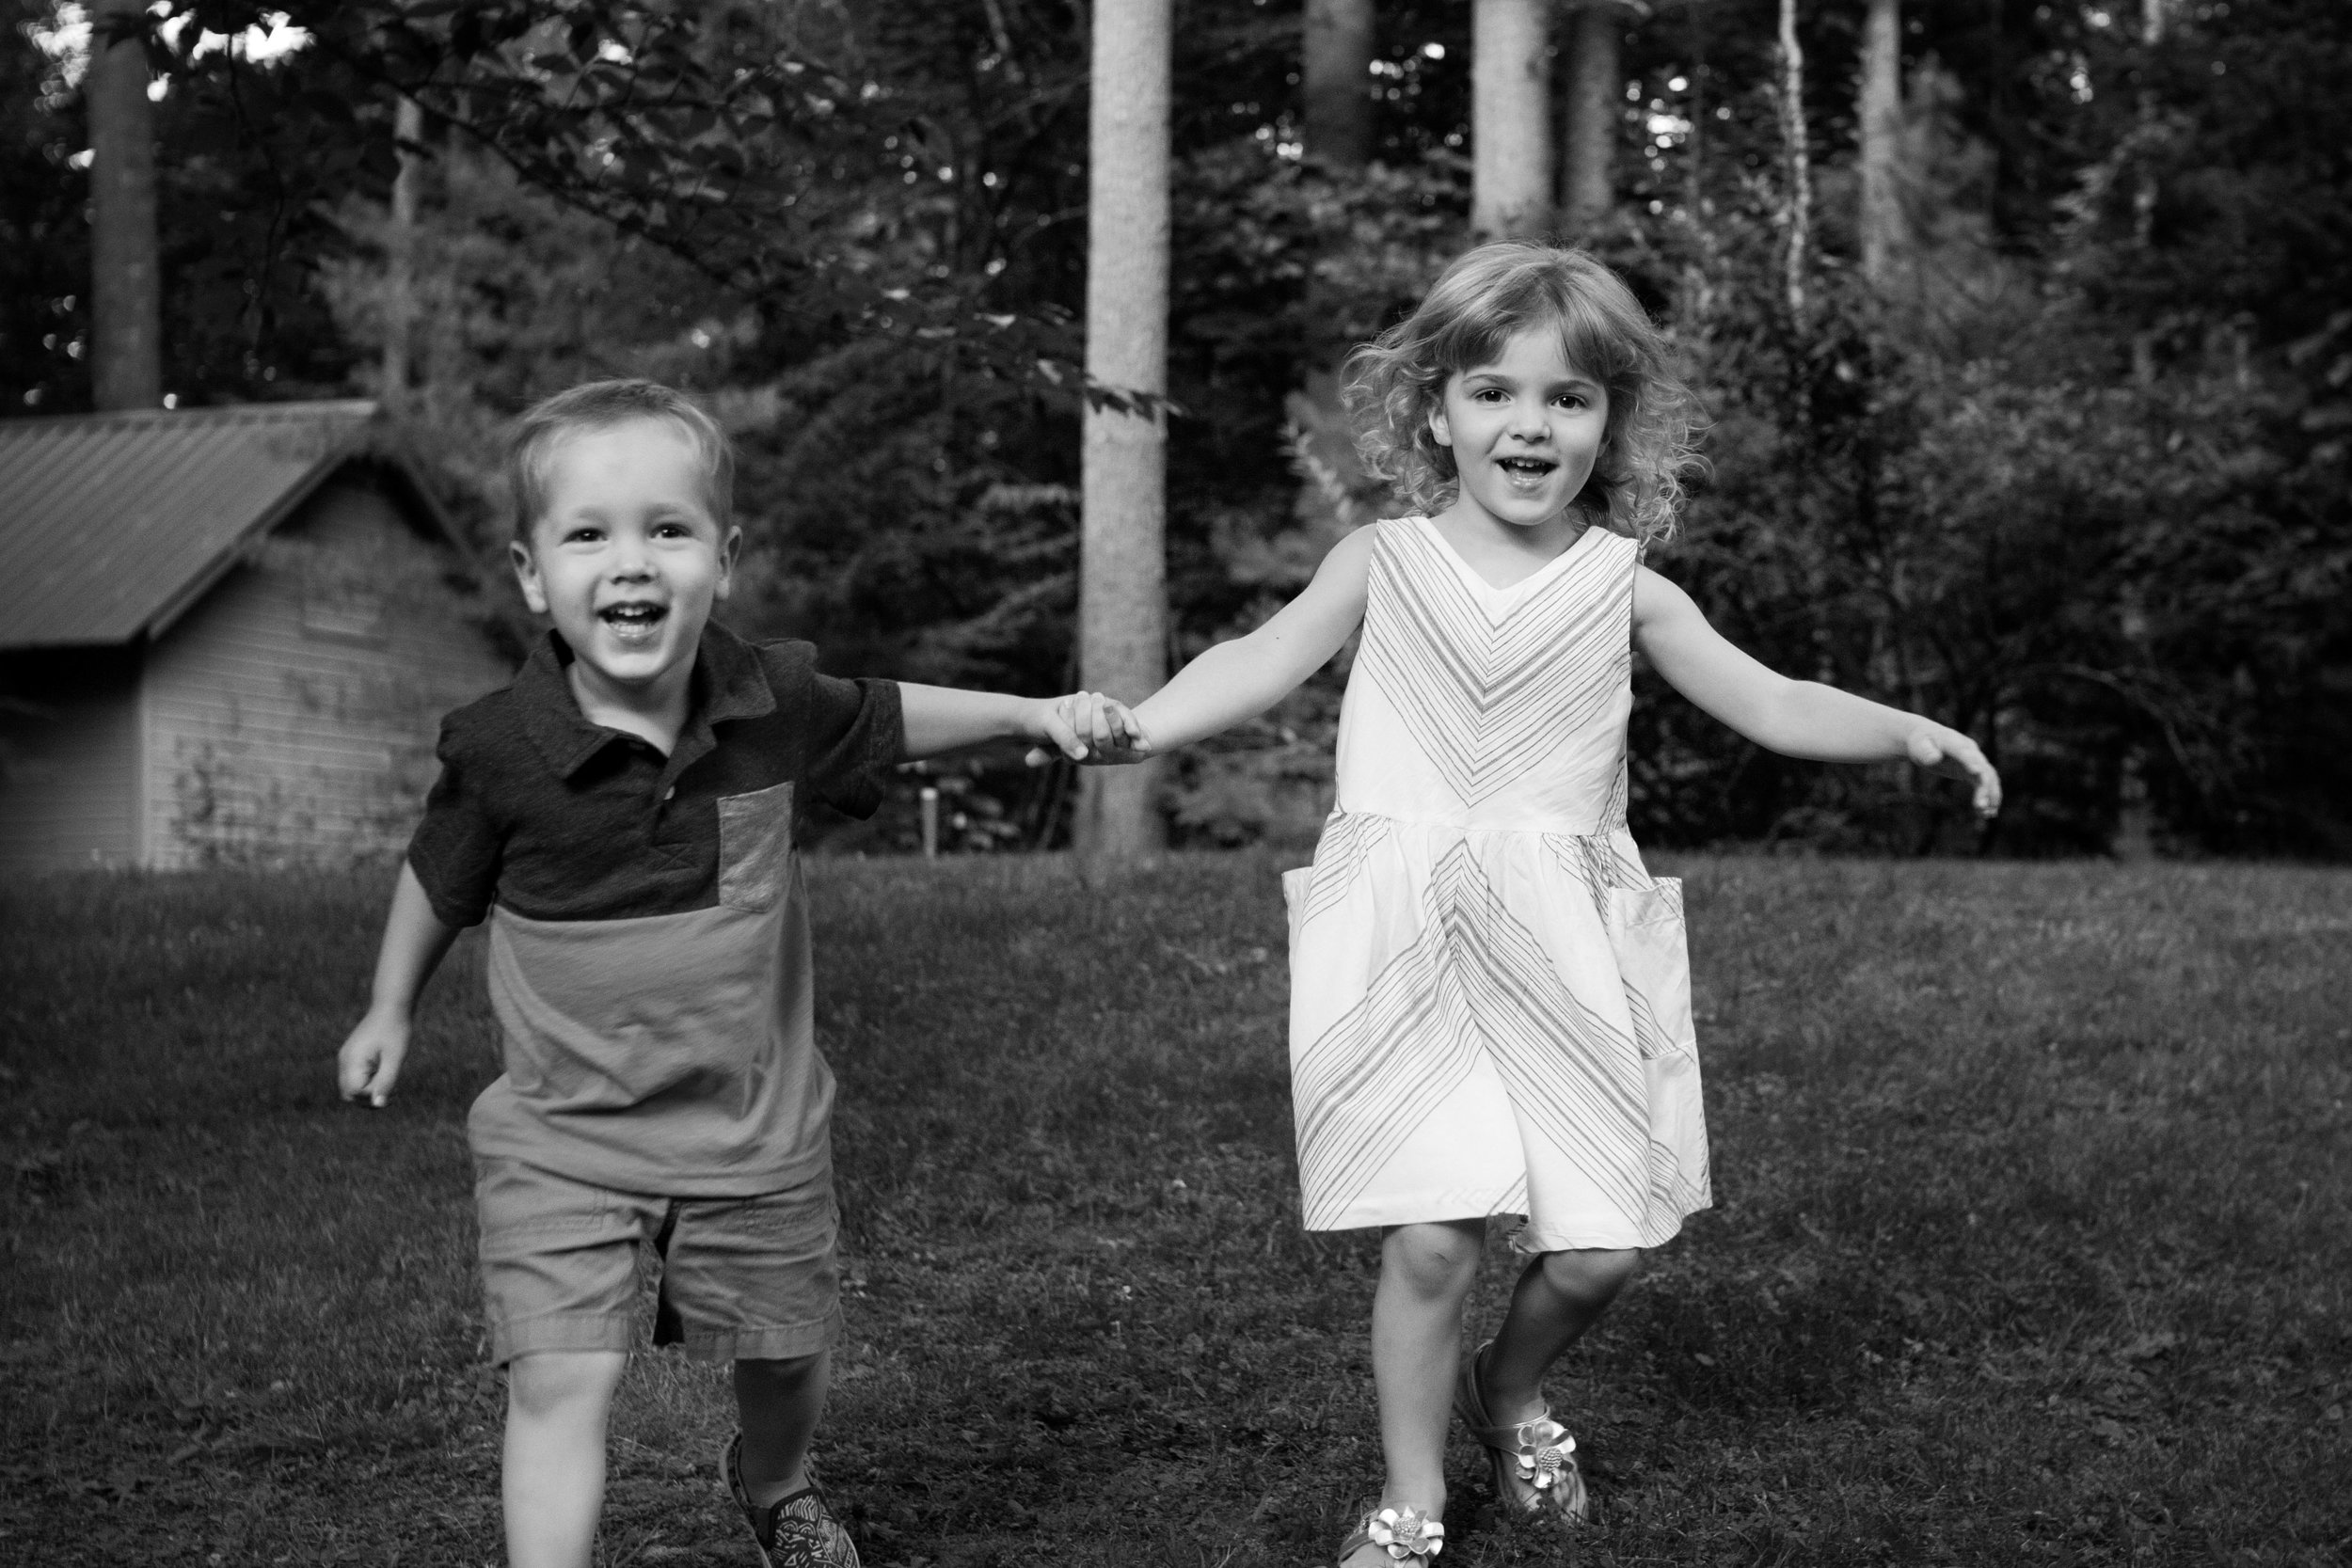 black and white photo of little boy and girl holding hands running